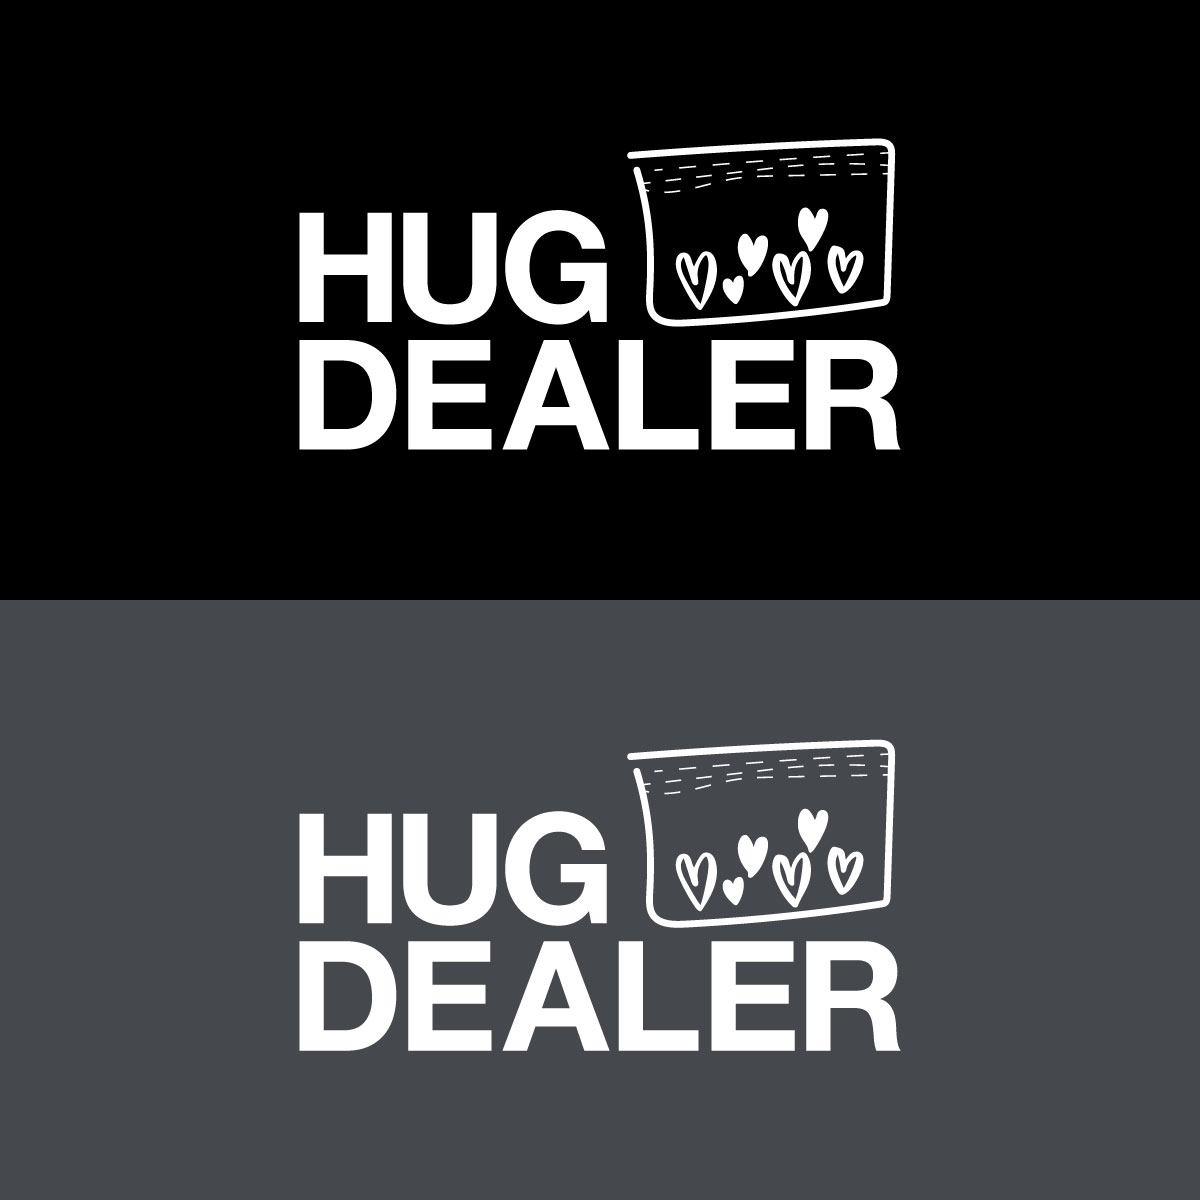 HUG DEALER design by kikicutt sweatshirt store